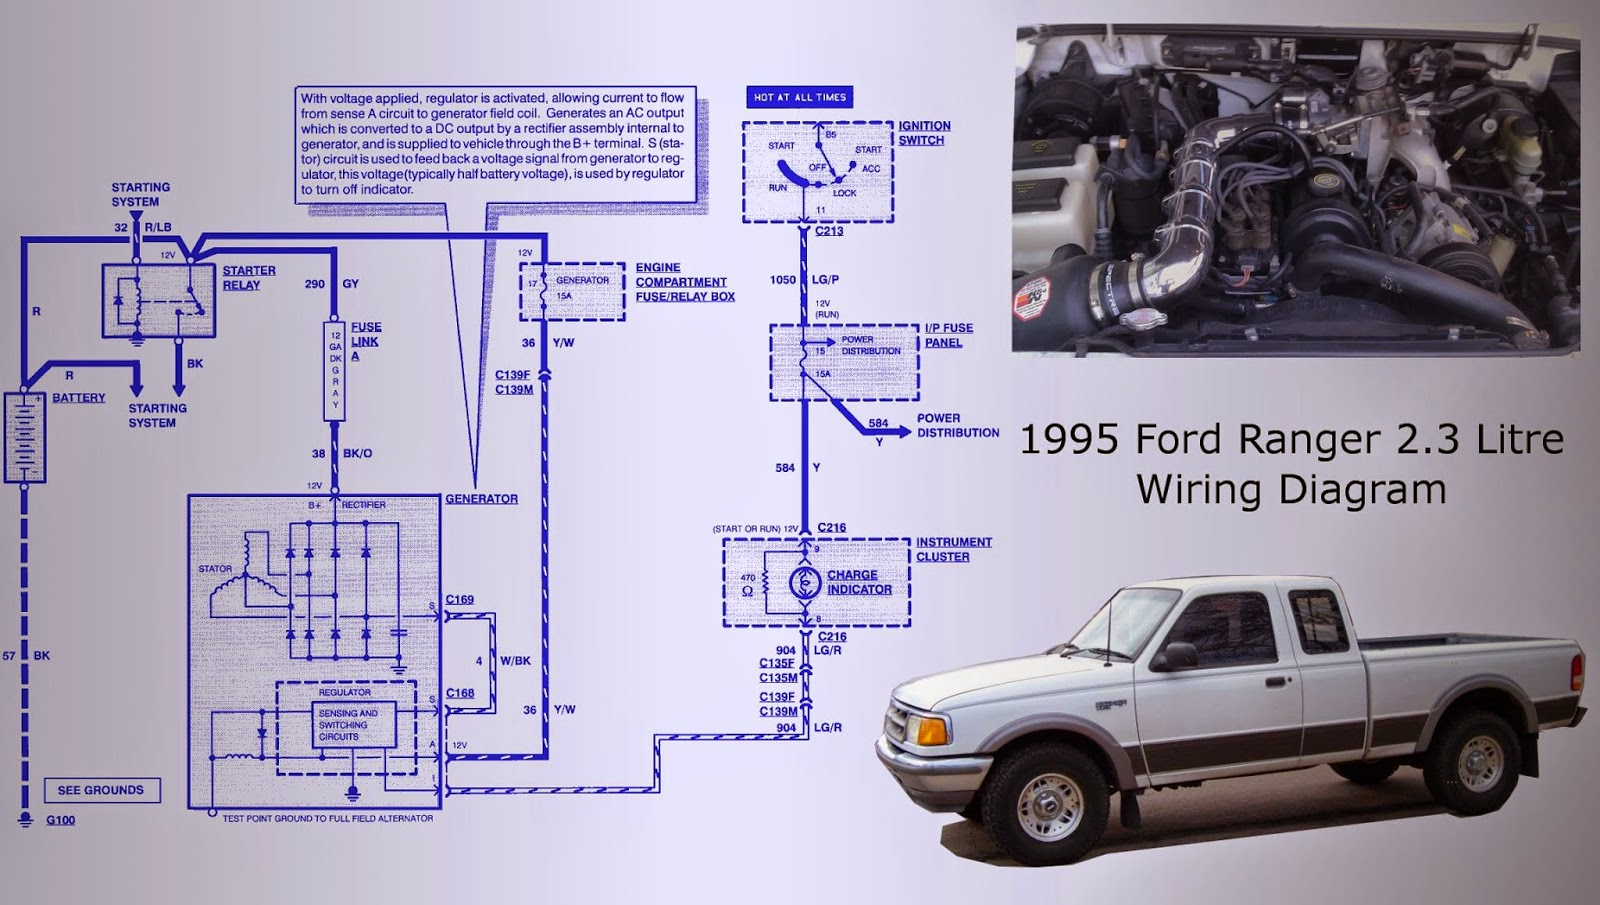 Stereo Wiring Diagram For 1995 Ford Ranger